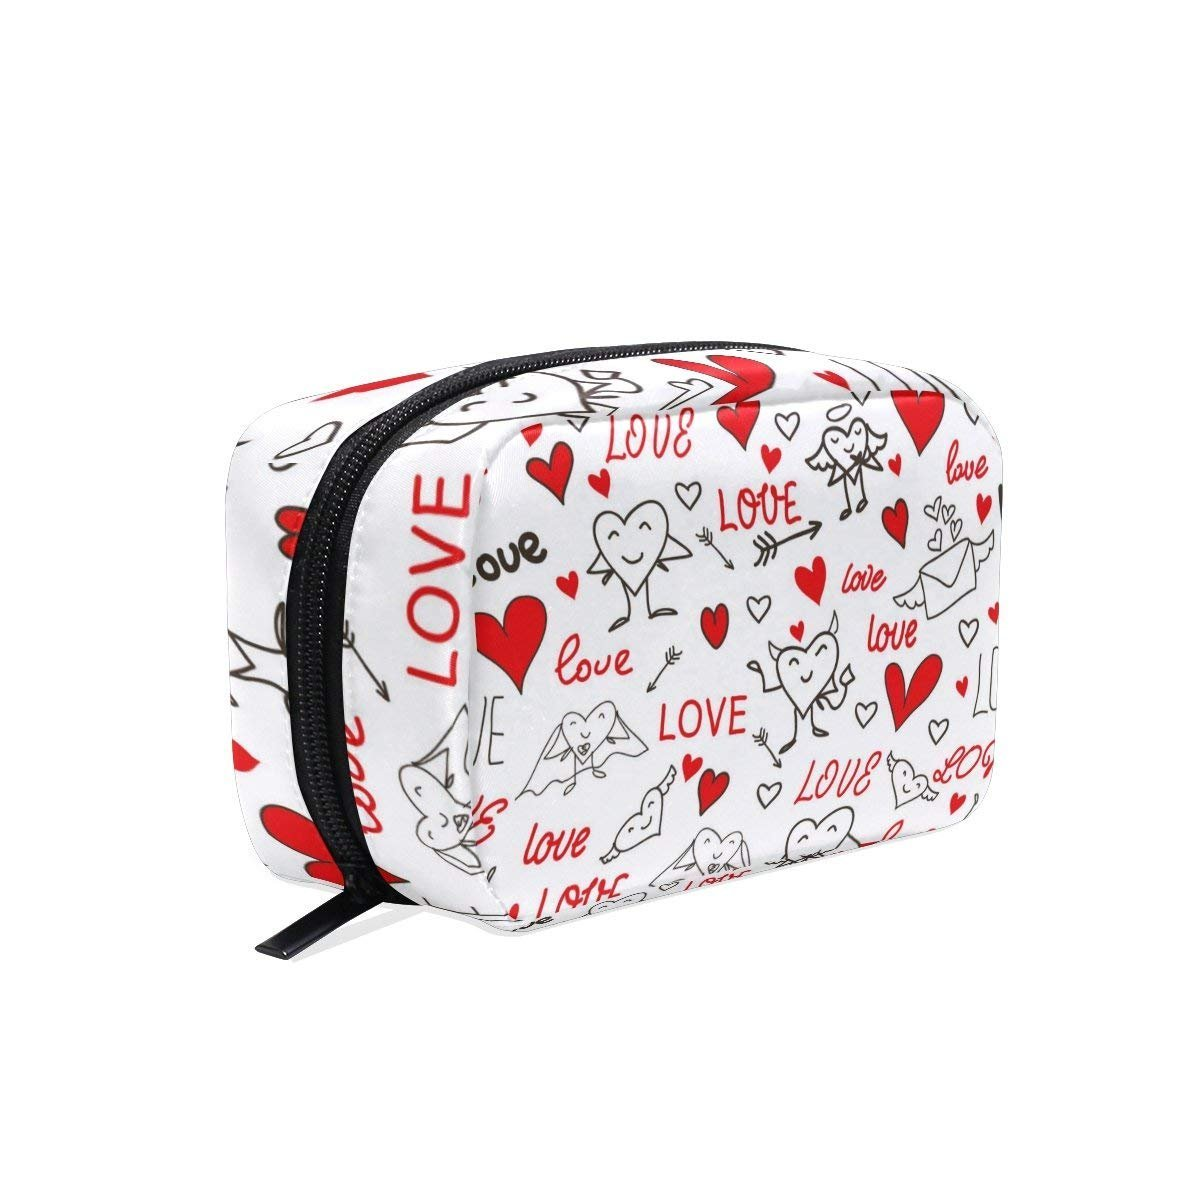 Seamless Love And Heart Makeup Case Bag Appropriate Capacity Portable Beauty Girl And Women Cosmetic Bags Storage Bags for Travel by Sunshine (Image #1)